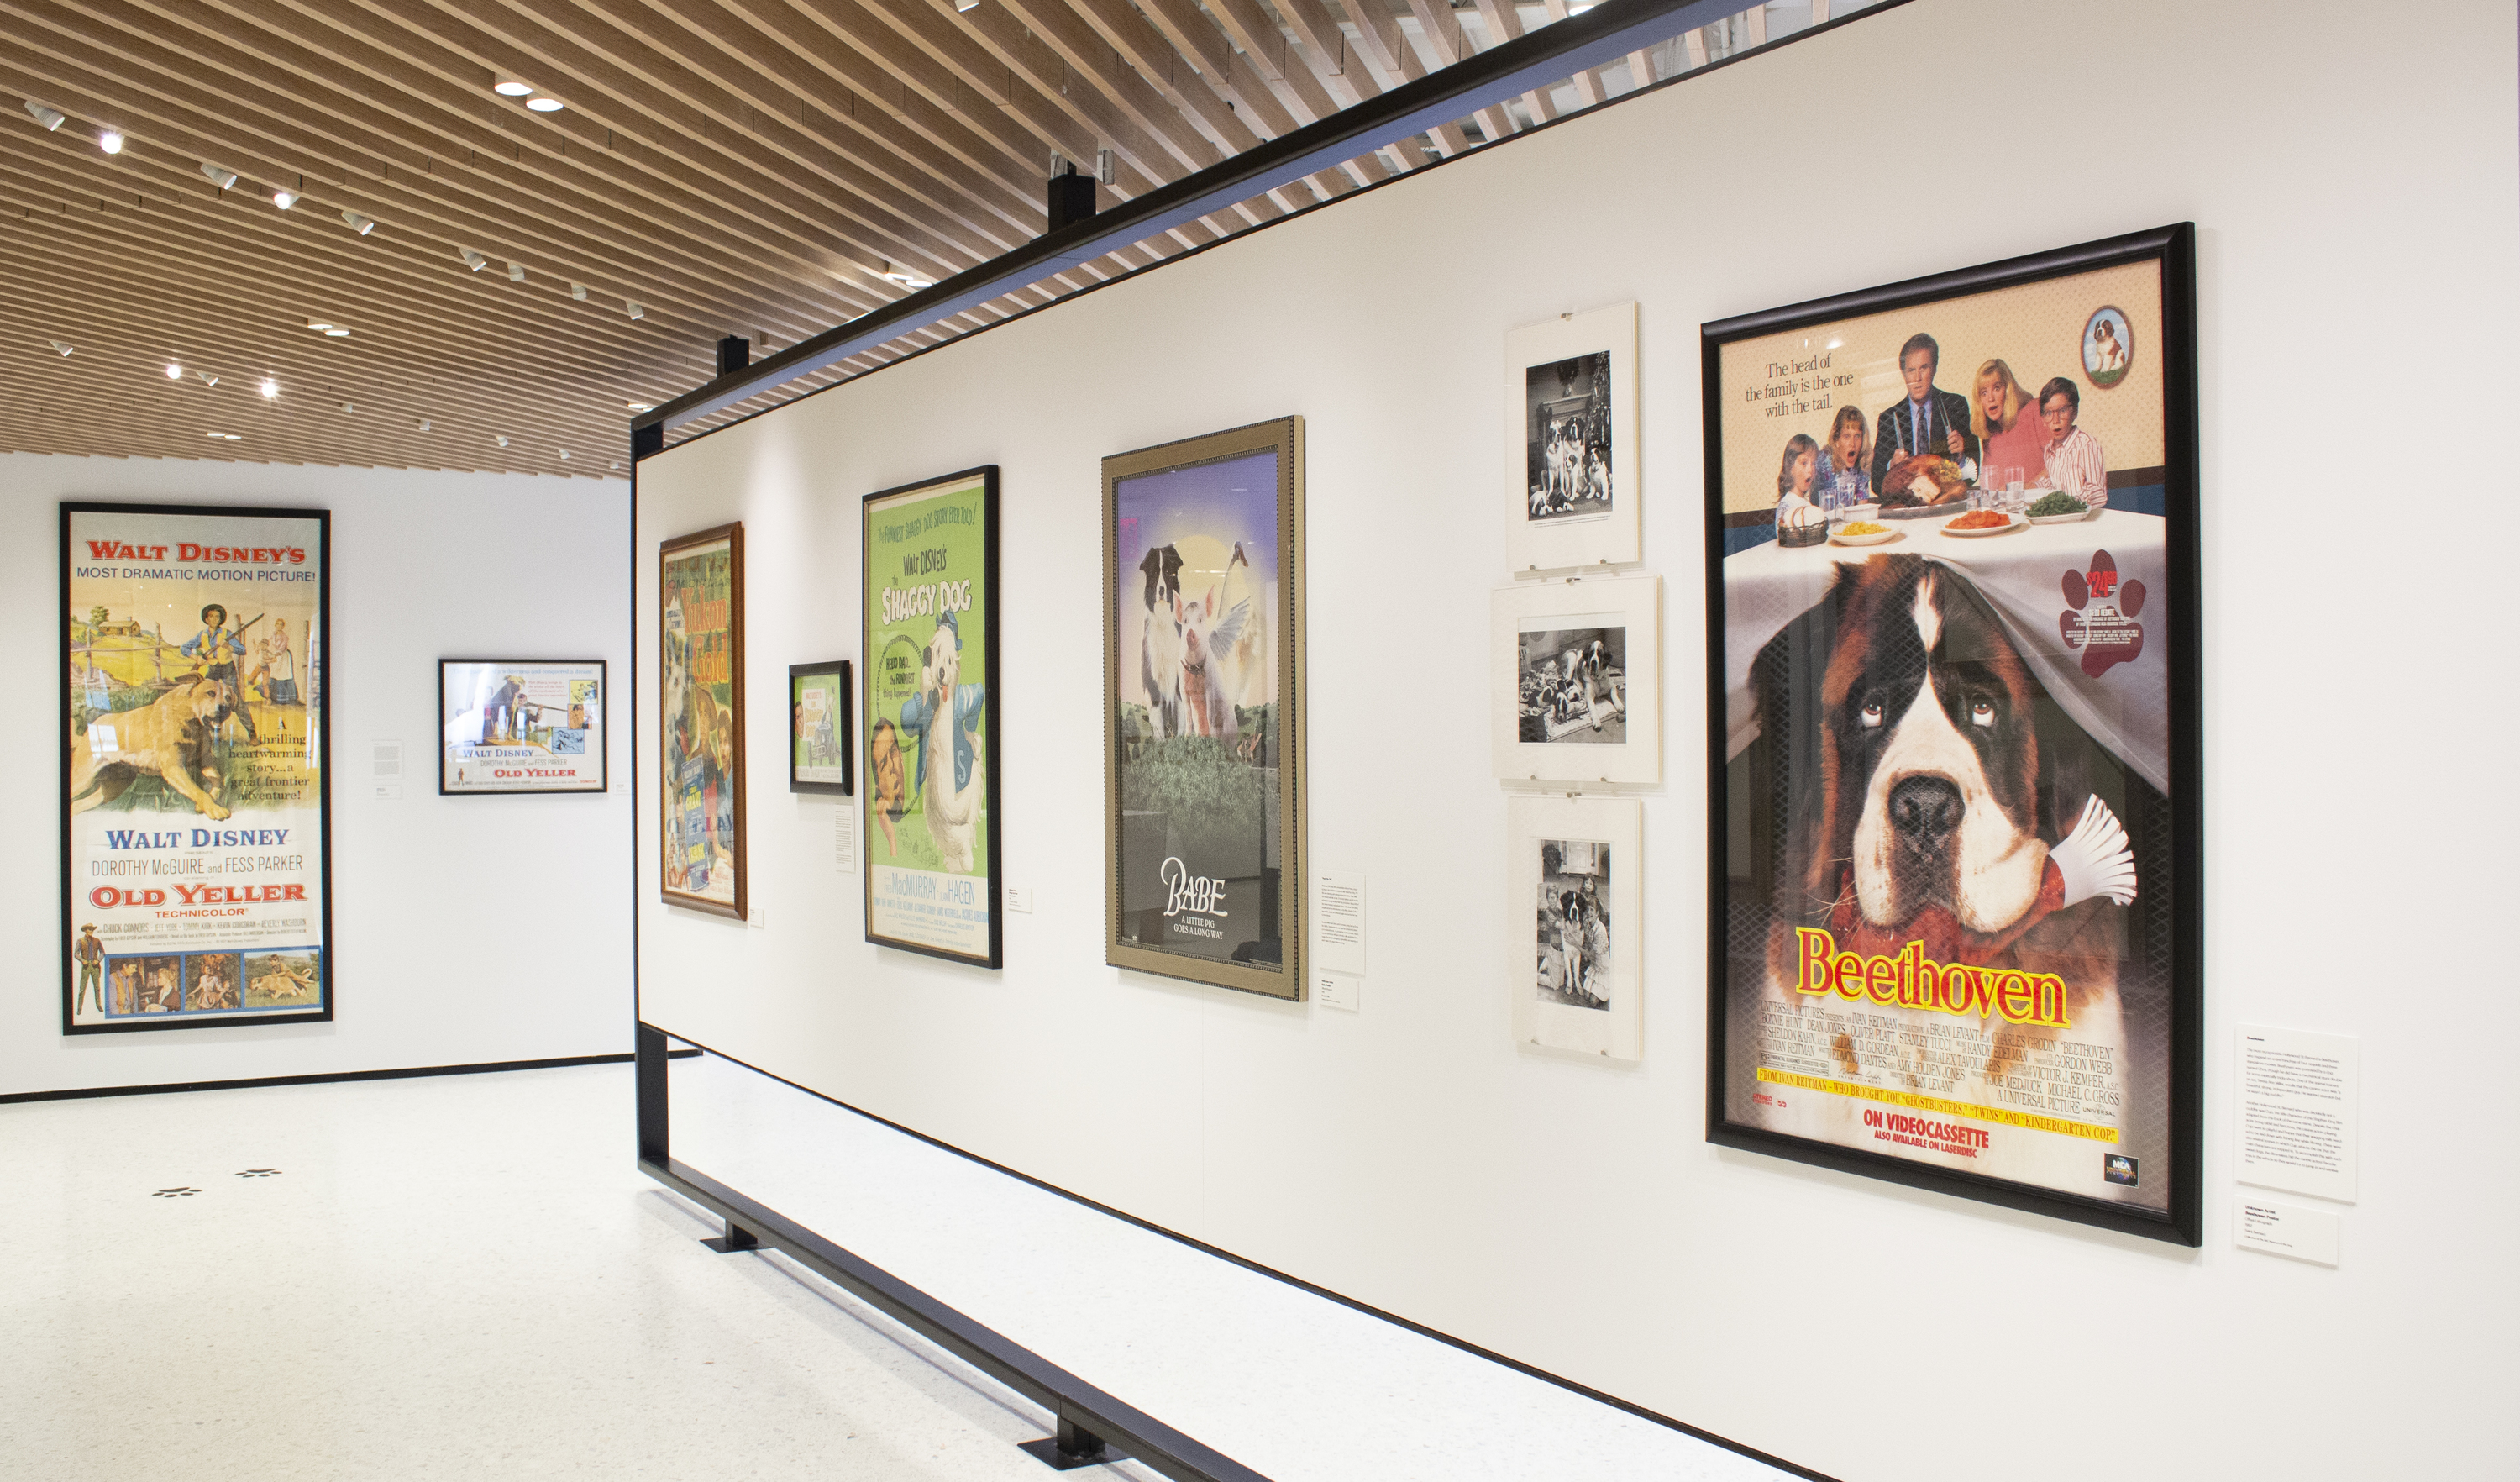 Hollywood dogs are getting their own NYC museum exhibition